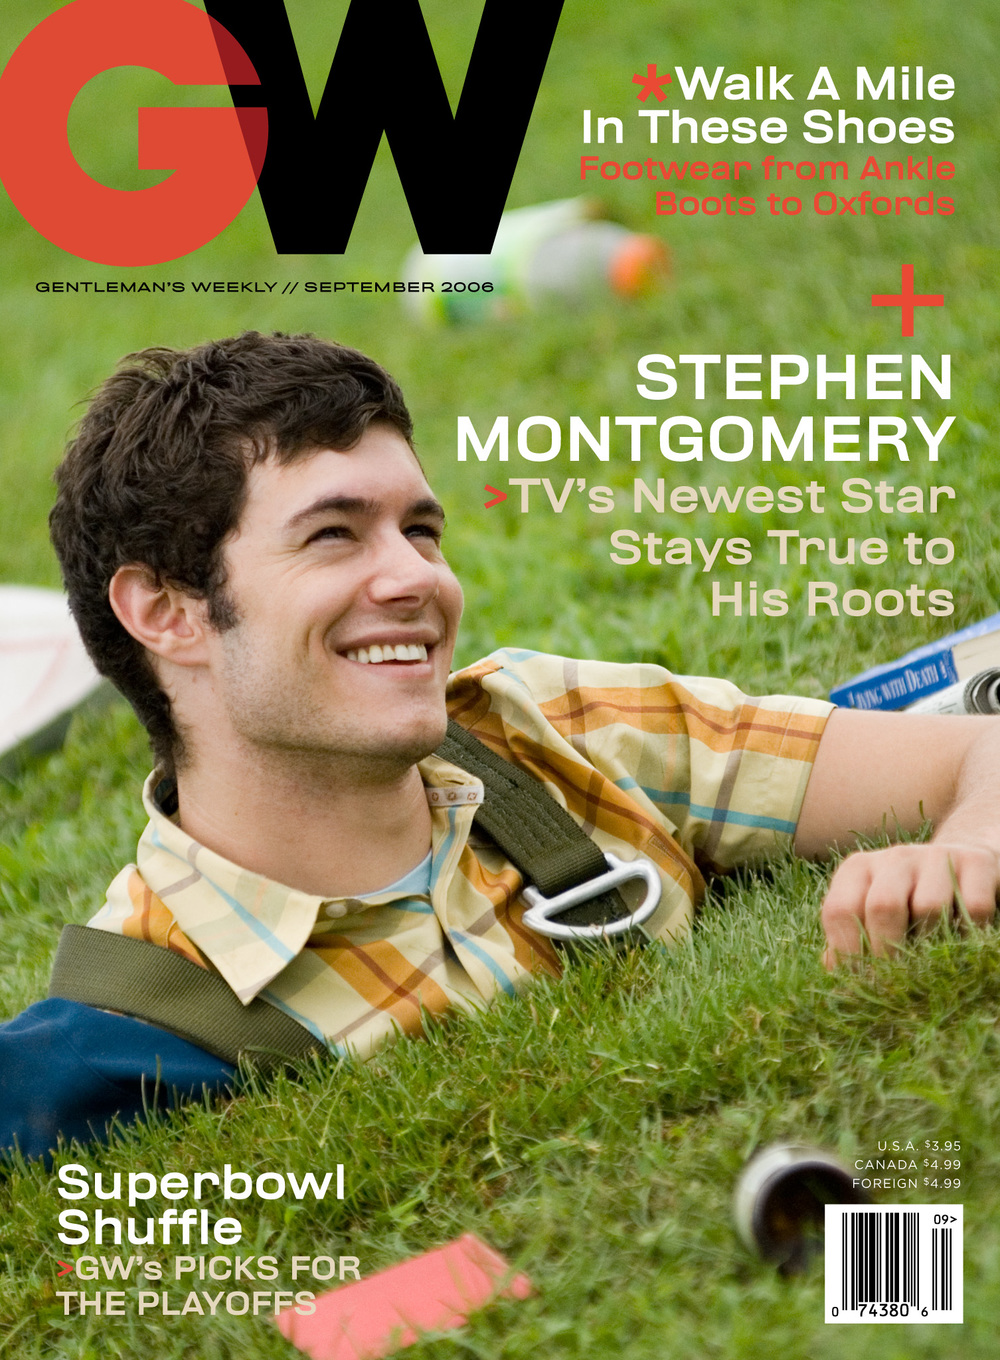 The Ten/magazine cover